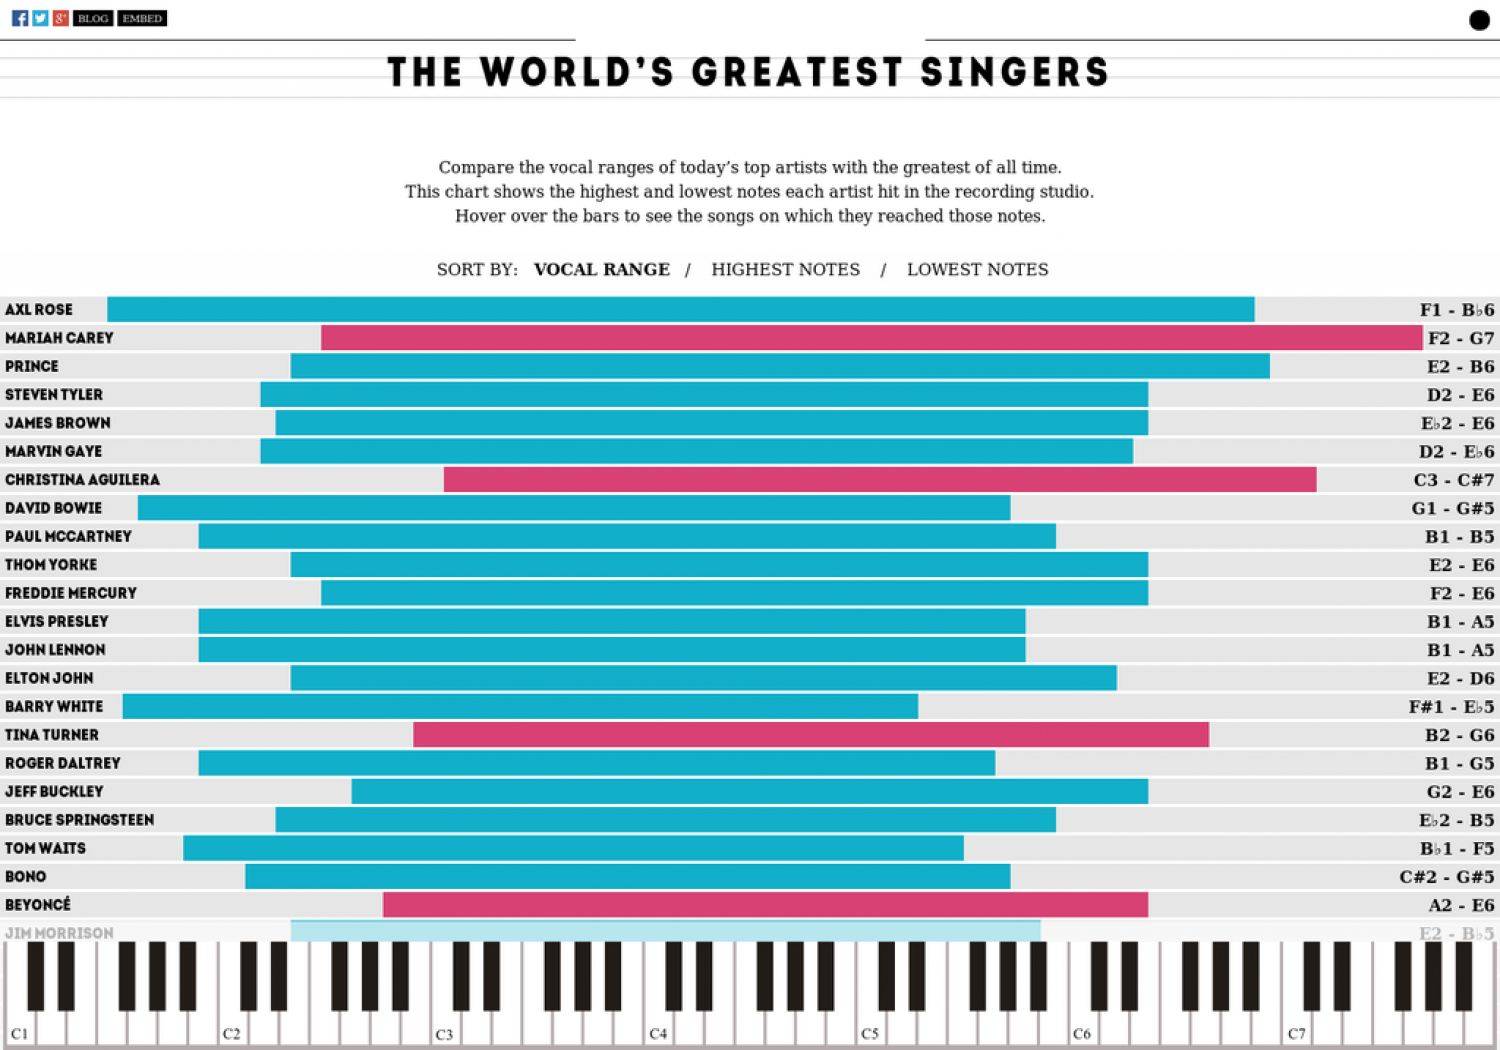 http://thumbnails.visually.netdna-cdn.com/the-vocal-ranges-of-the-worlds-greatest-singers-thumbnail_537ccdde92667_w1500.png